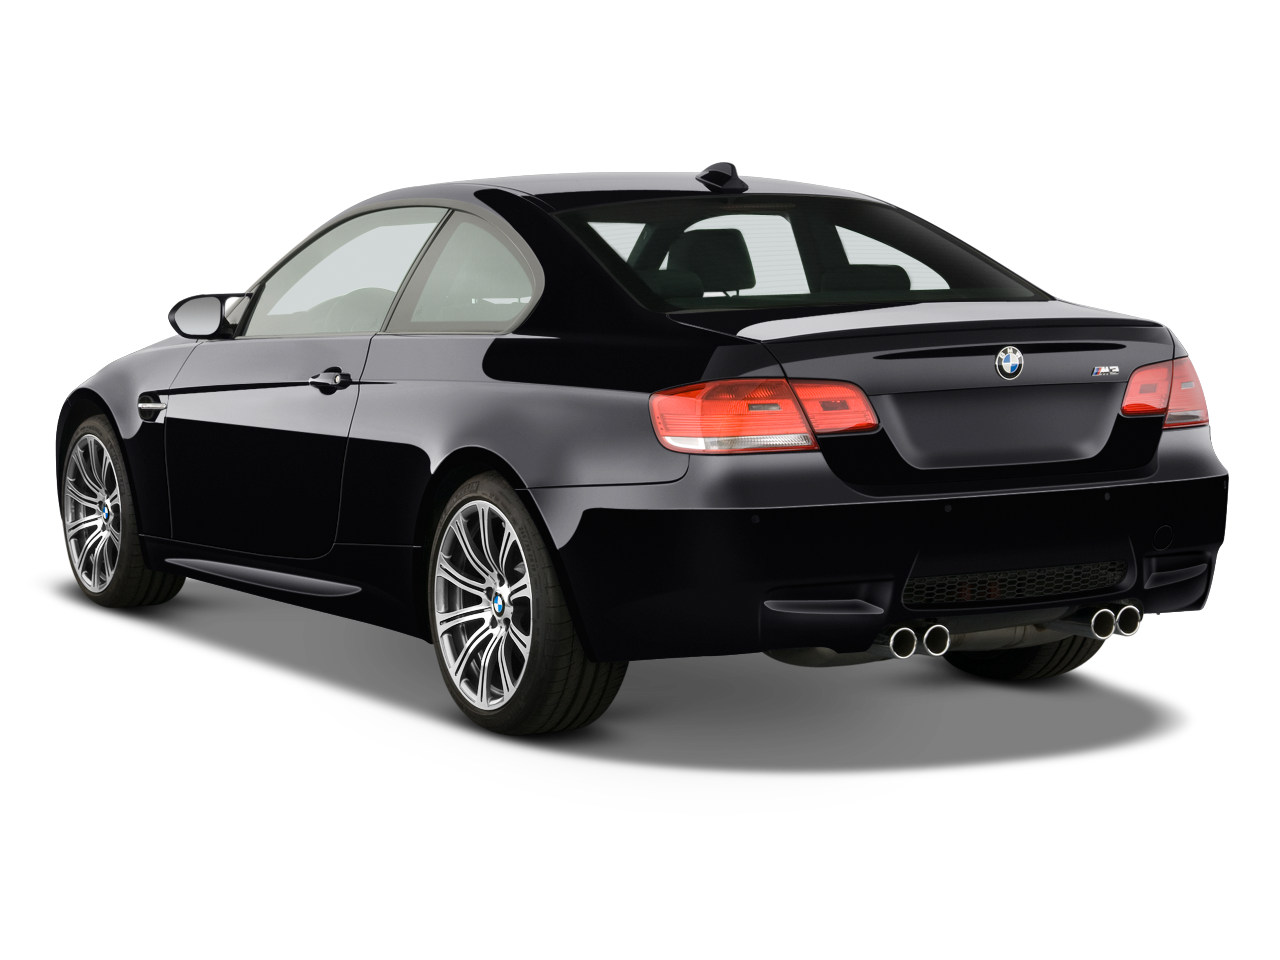 Bmw 335i coupe 2009 horsepower